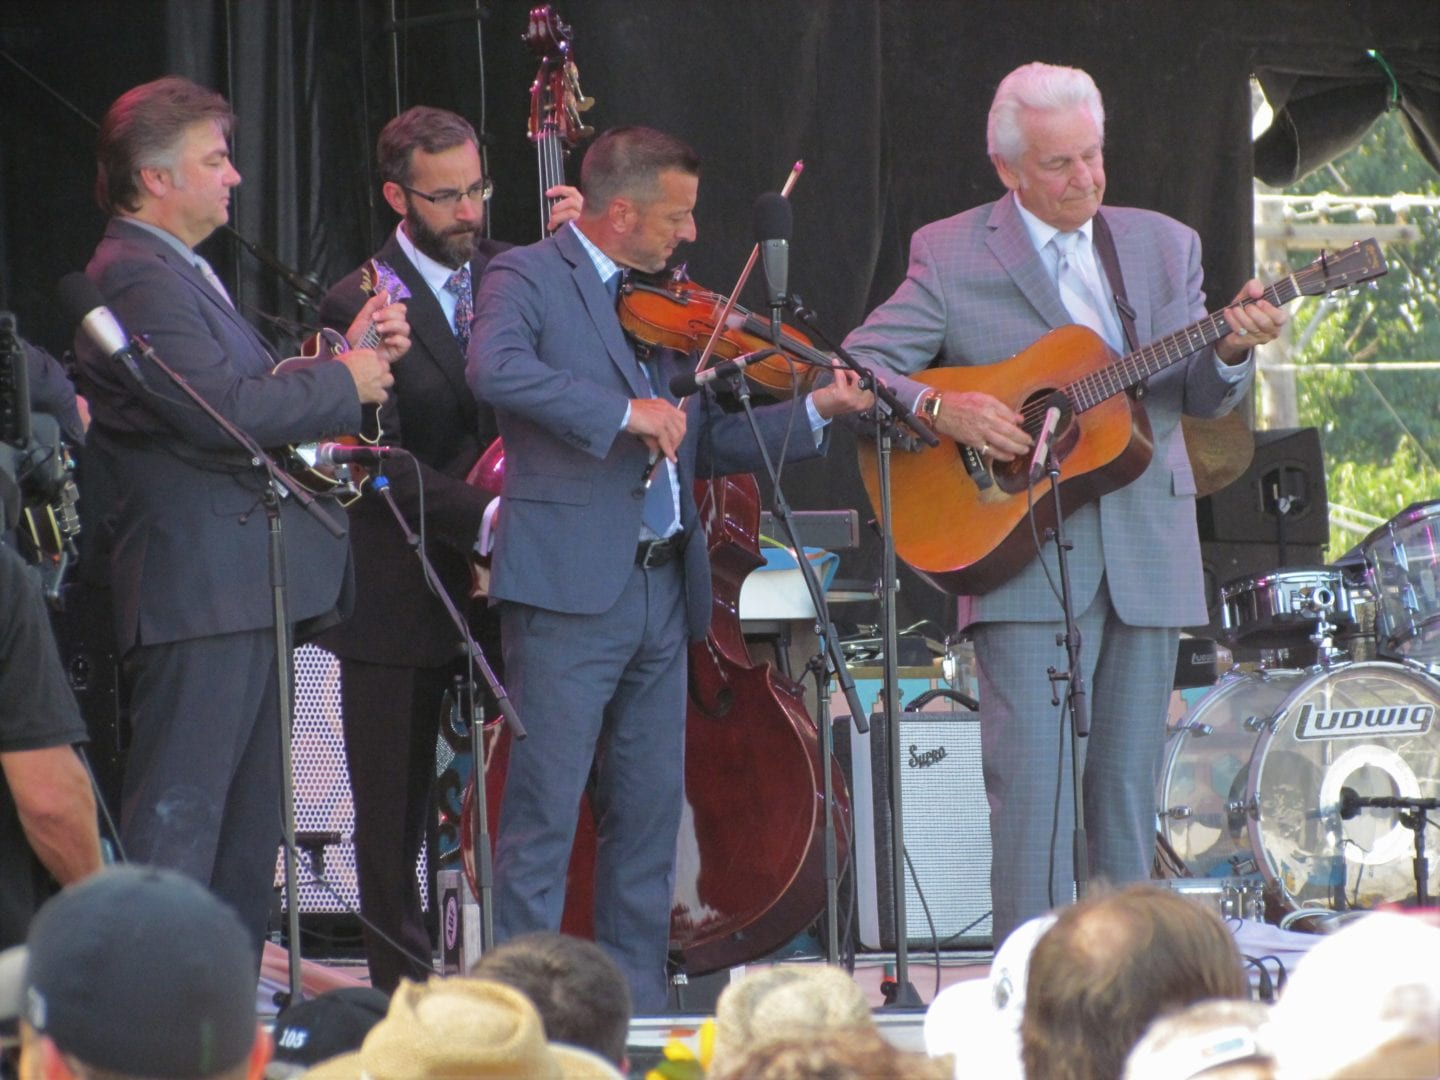 Del McCoury and the band playing instruments